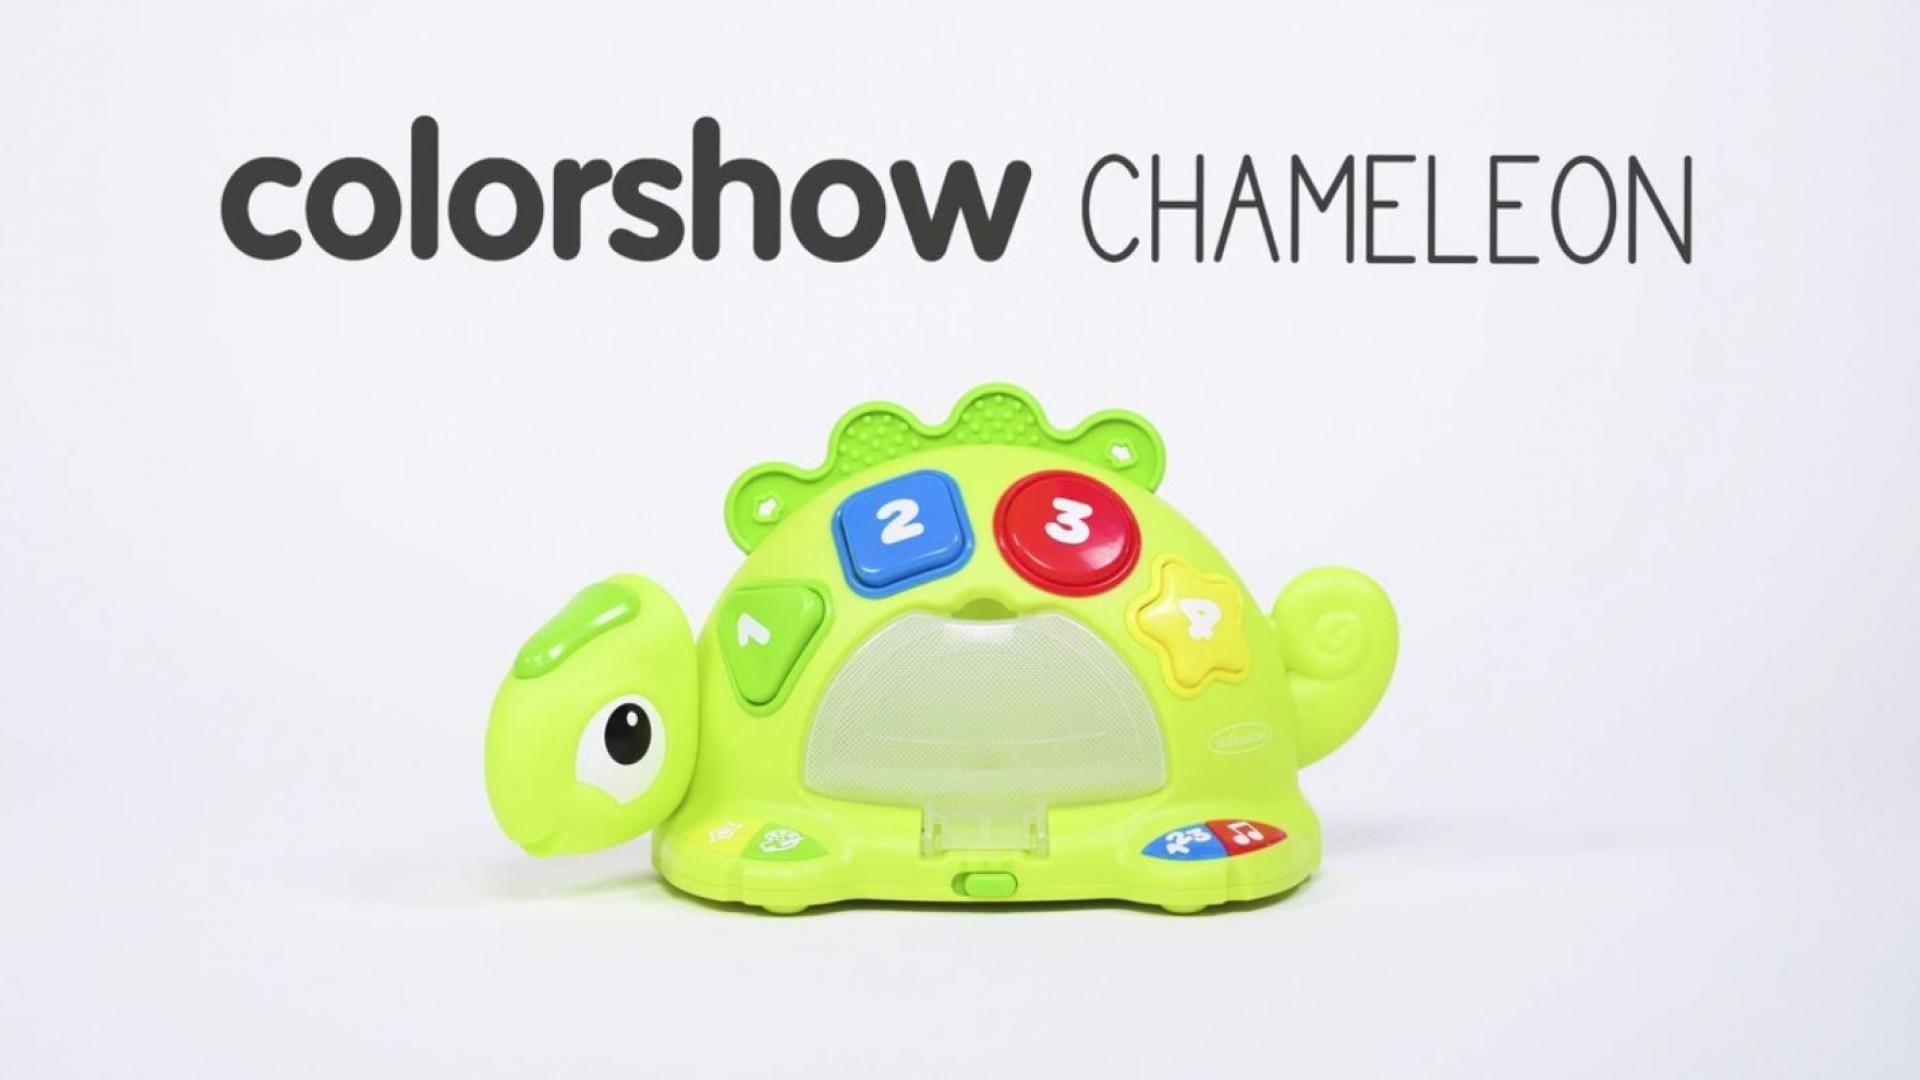 Colorshow Chameleon - Infantino Noodling Collection